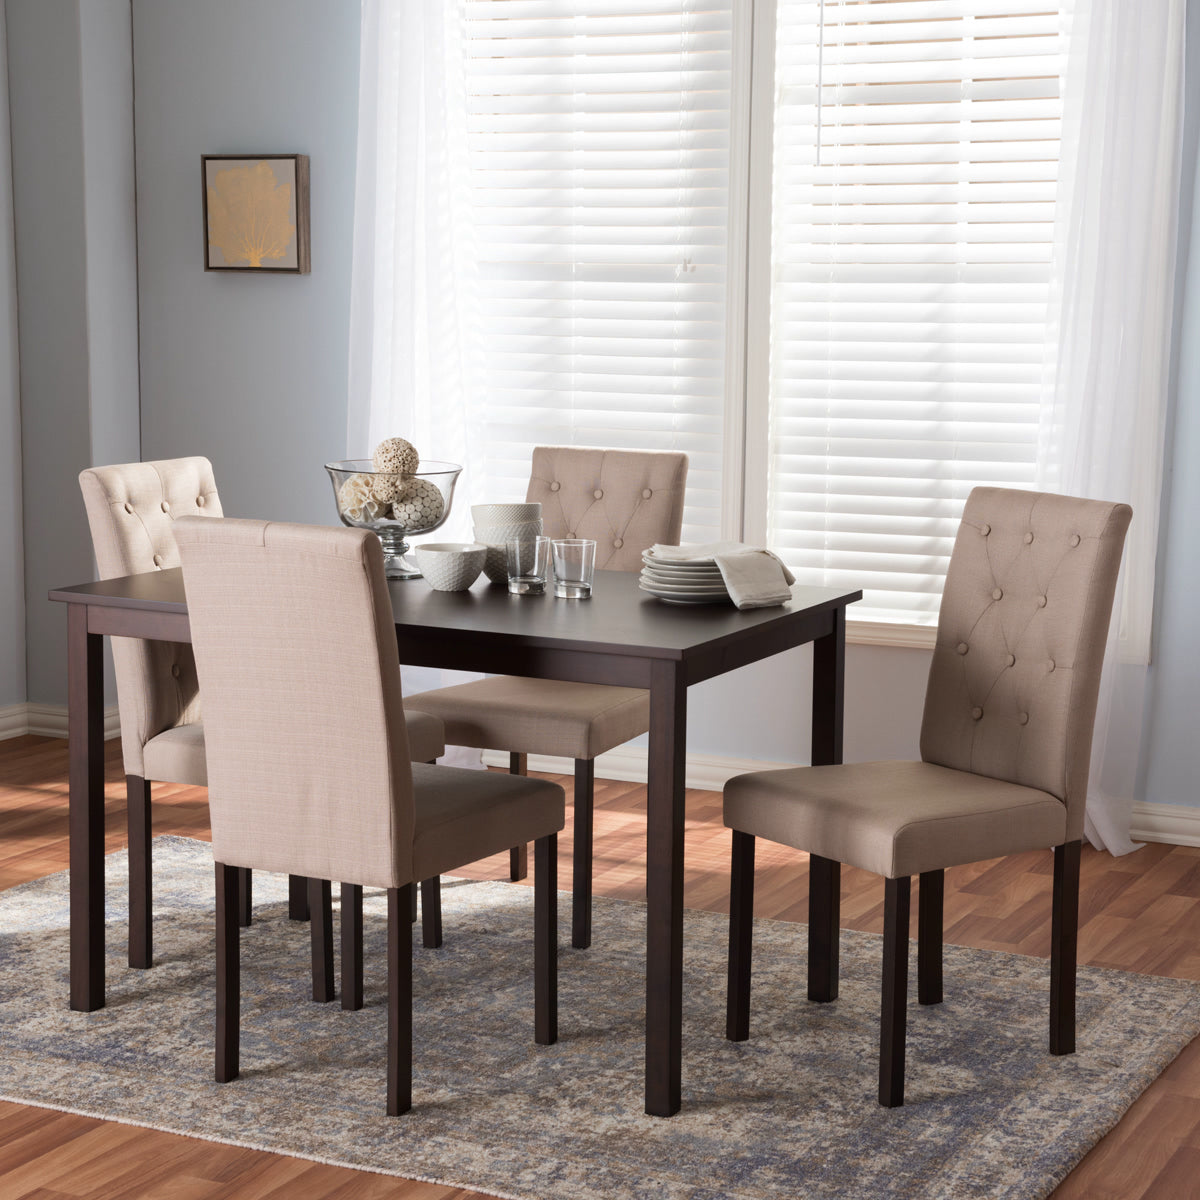 Baxton Studio Gardner Modern and Contemporary 5-Piece Dark Brown Finished Beige Fabric Upholstered Dining Set  Baxton Studio--Minimal And Modern - 1